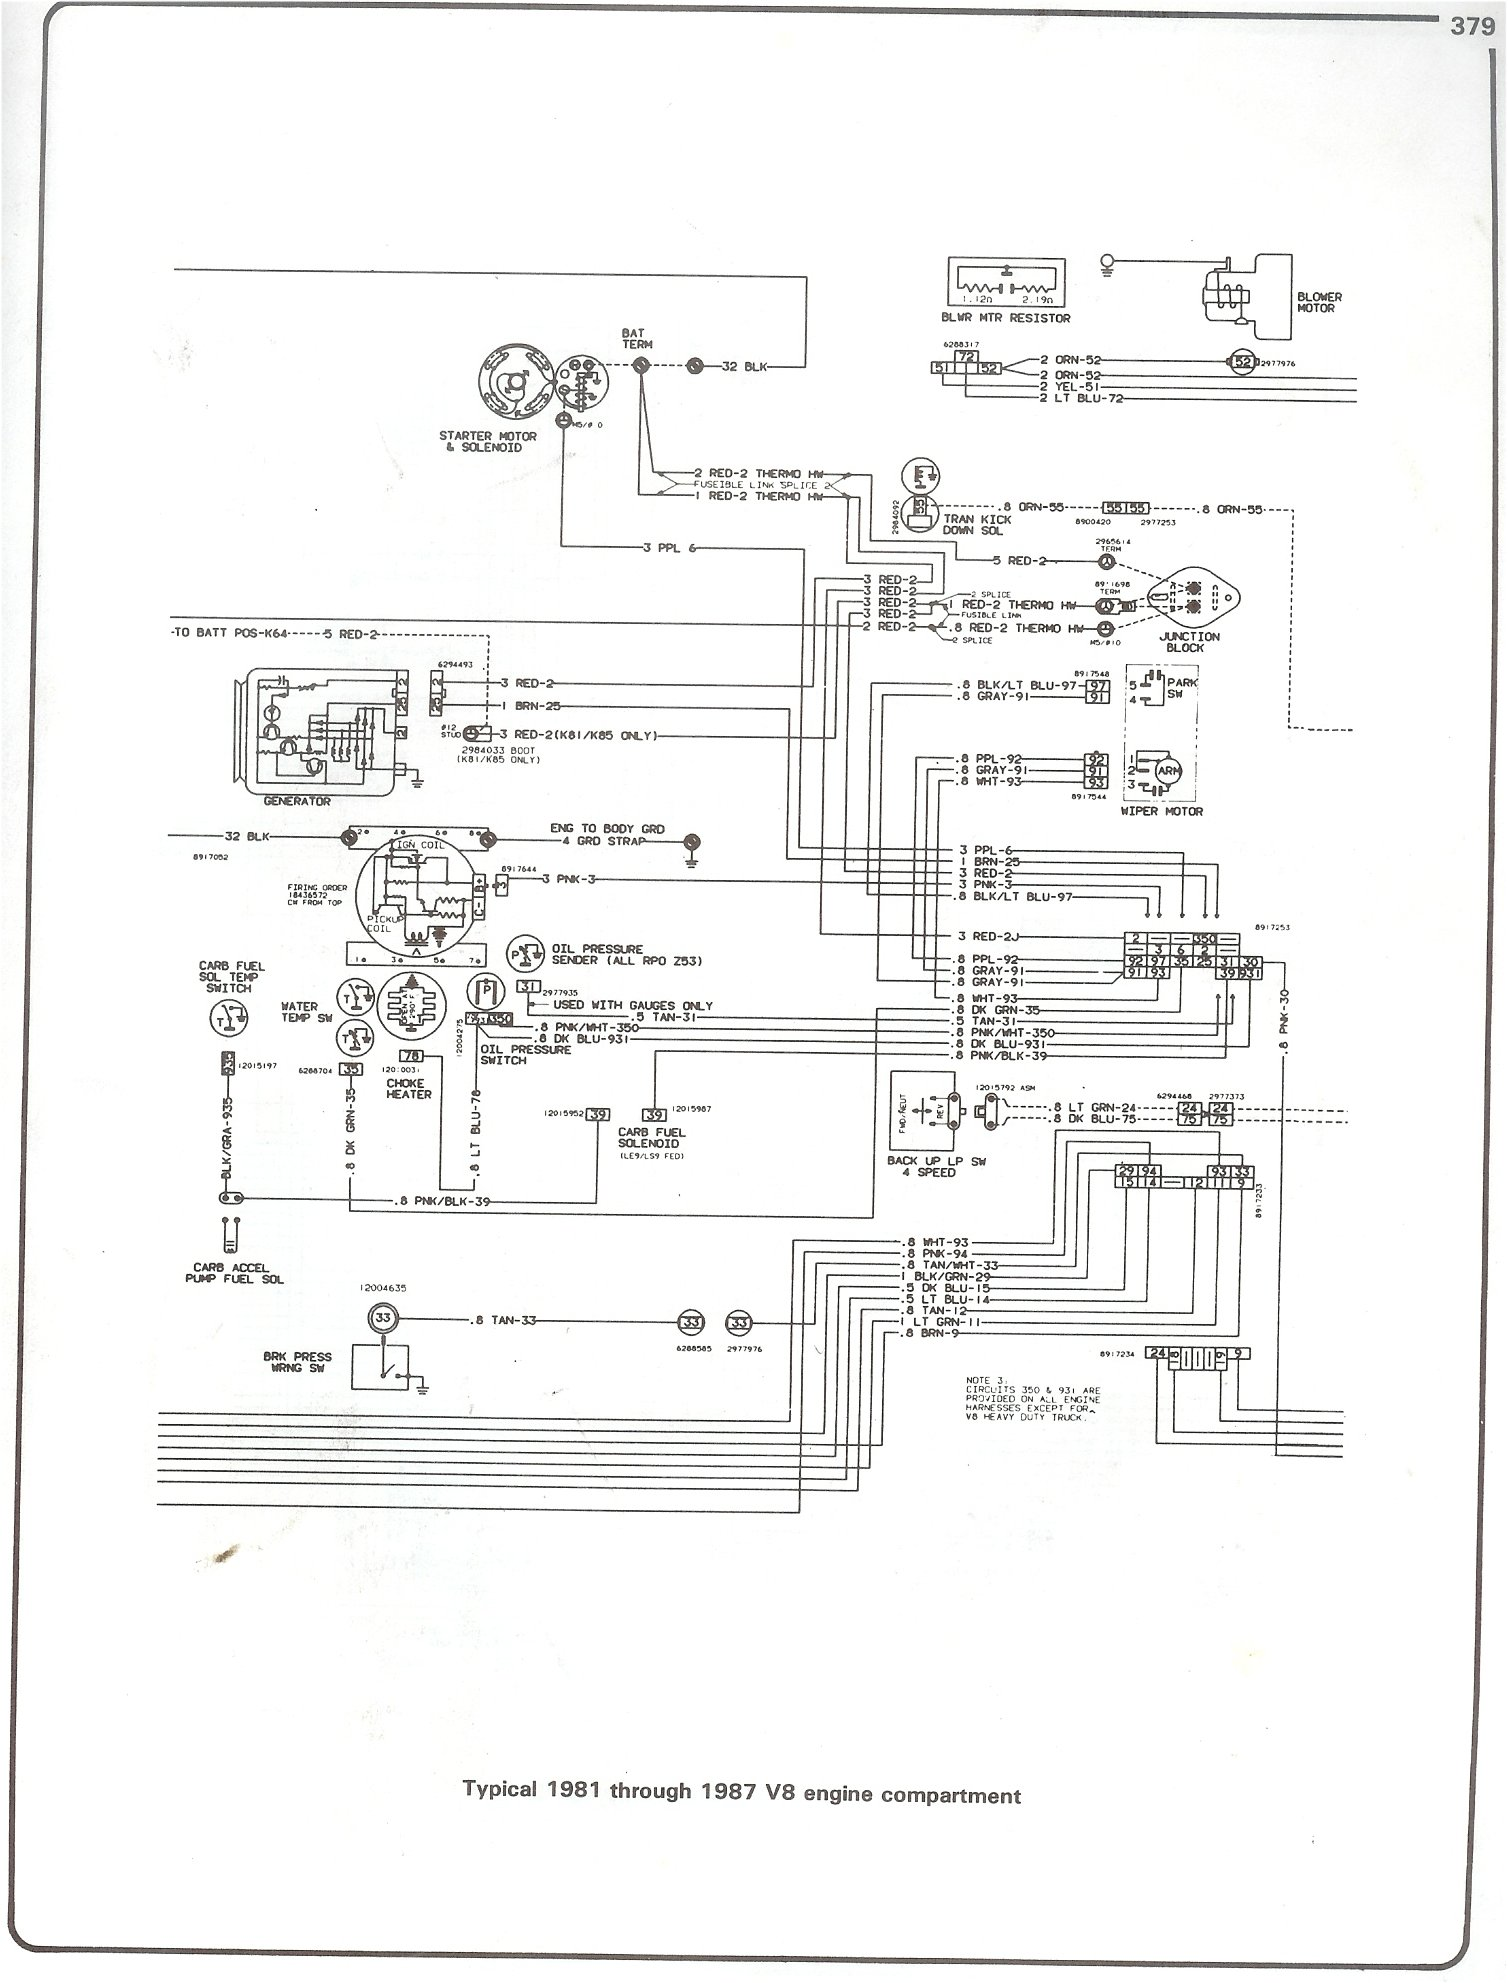 81 87_V8_engine complete 73 87 wiring diagrams  at creativeand.co